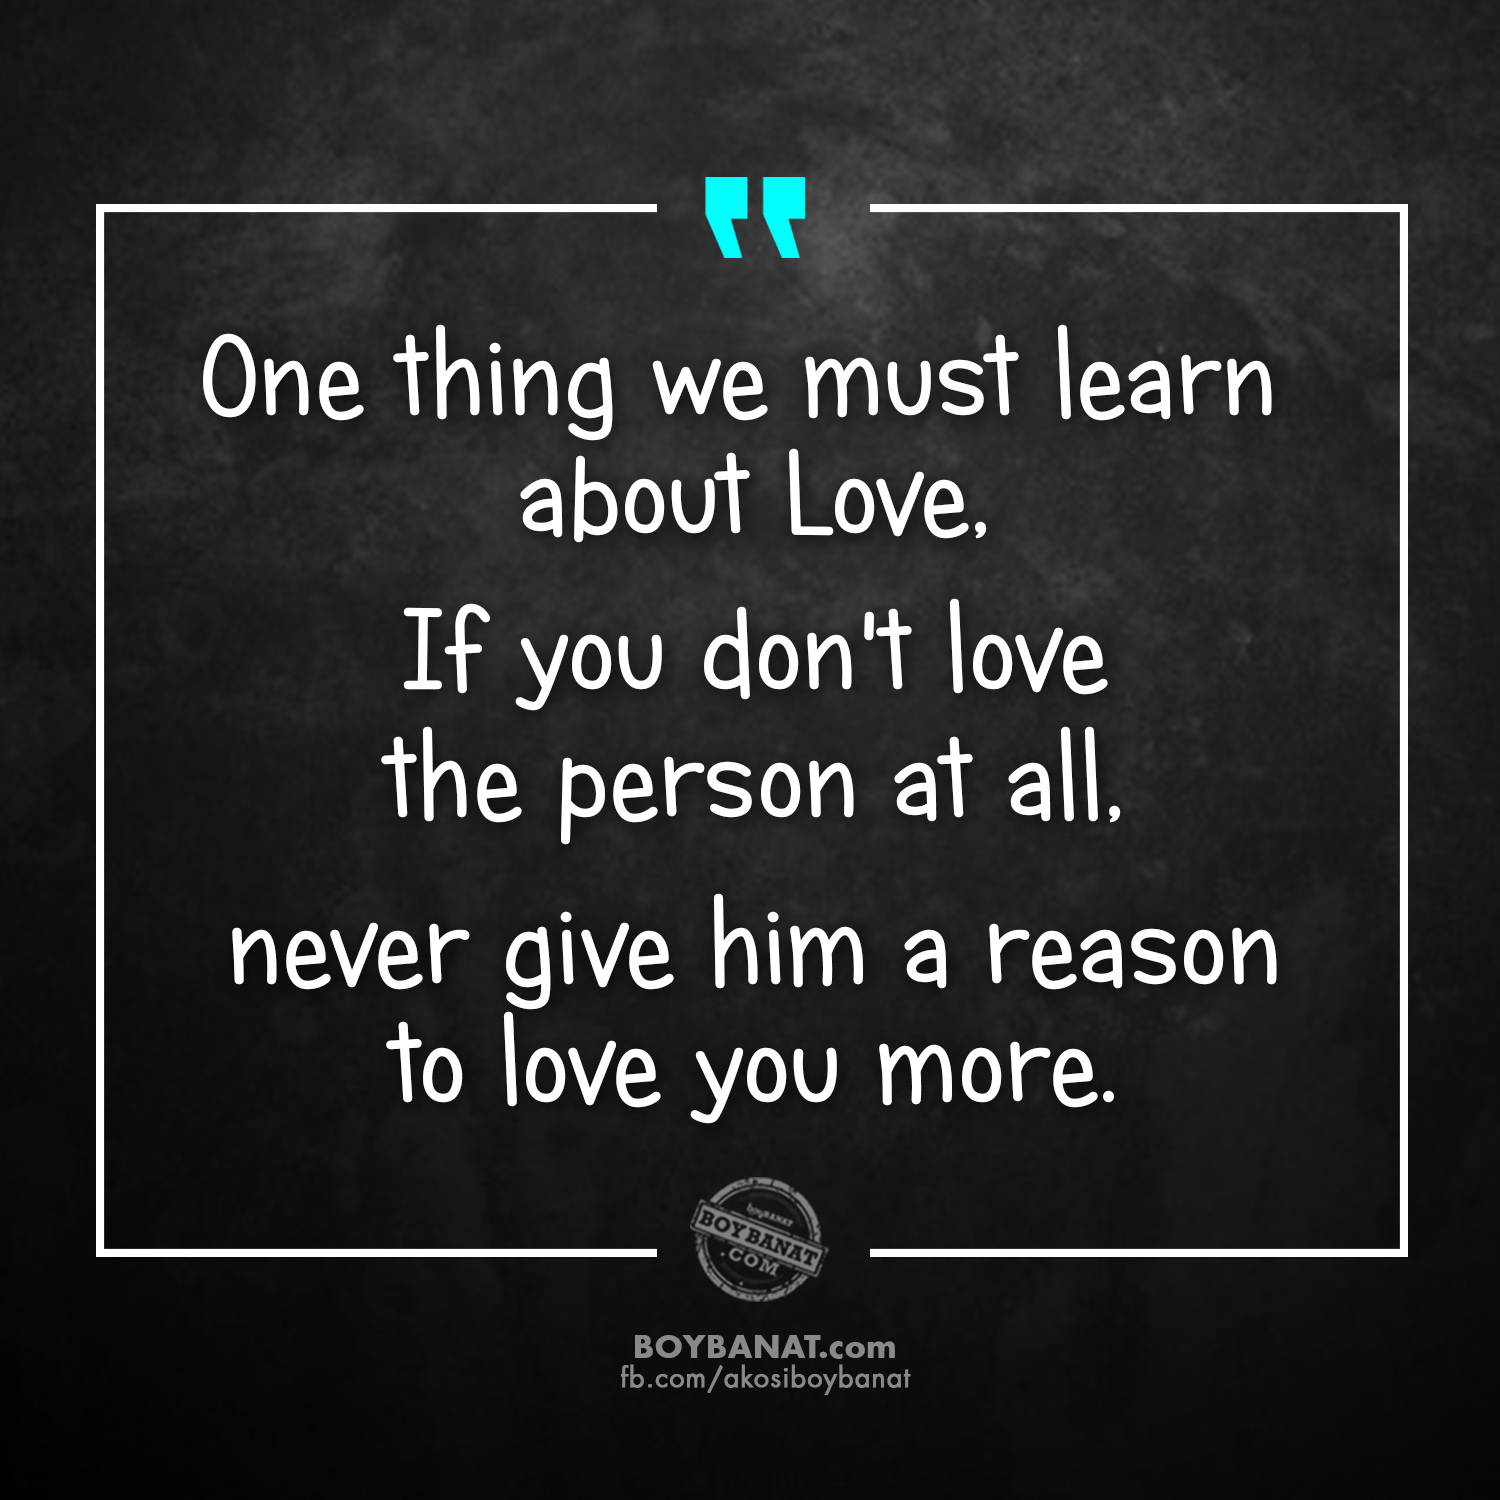 True Love Quotes Https1.bp.blogspotelddupp7Ckcv2Giqebcofi.